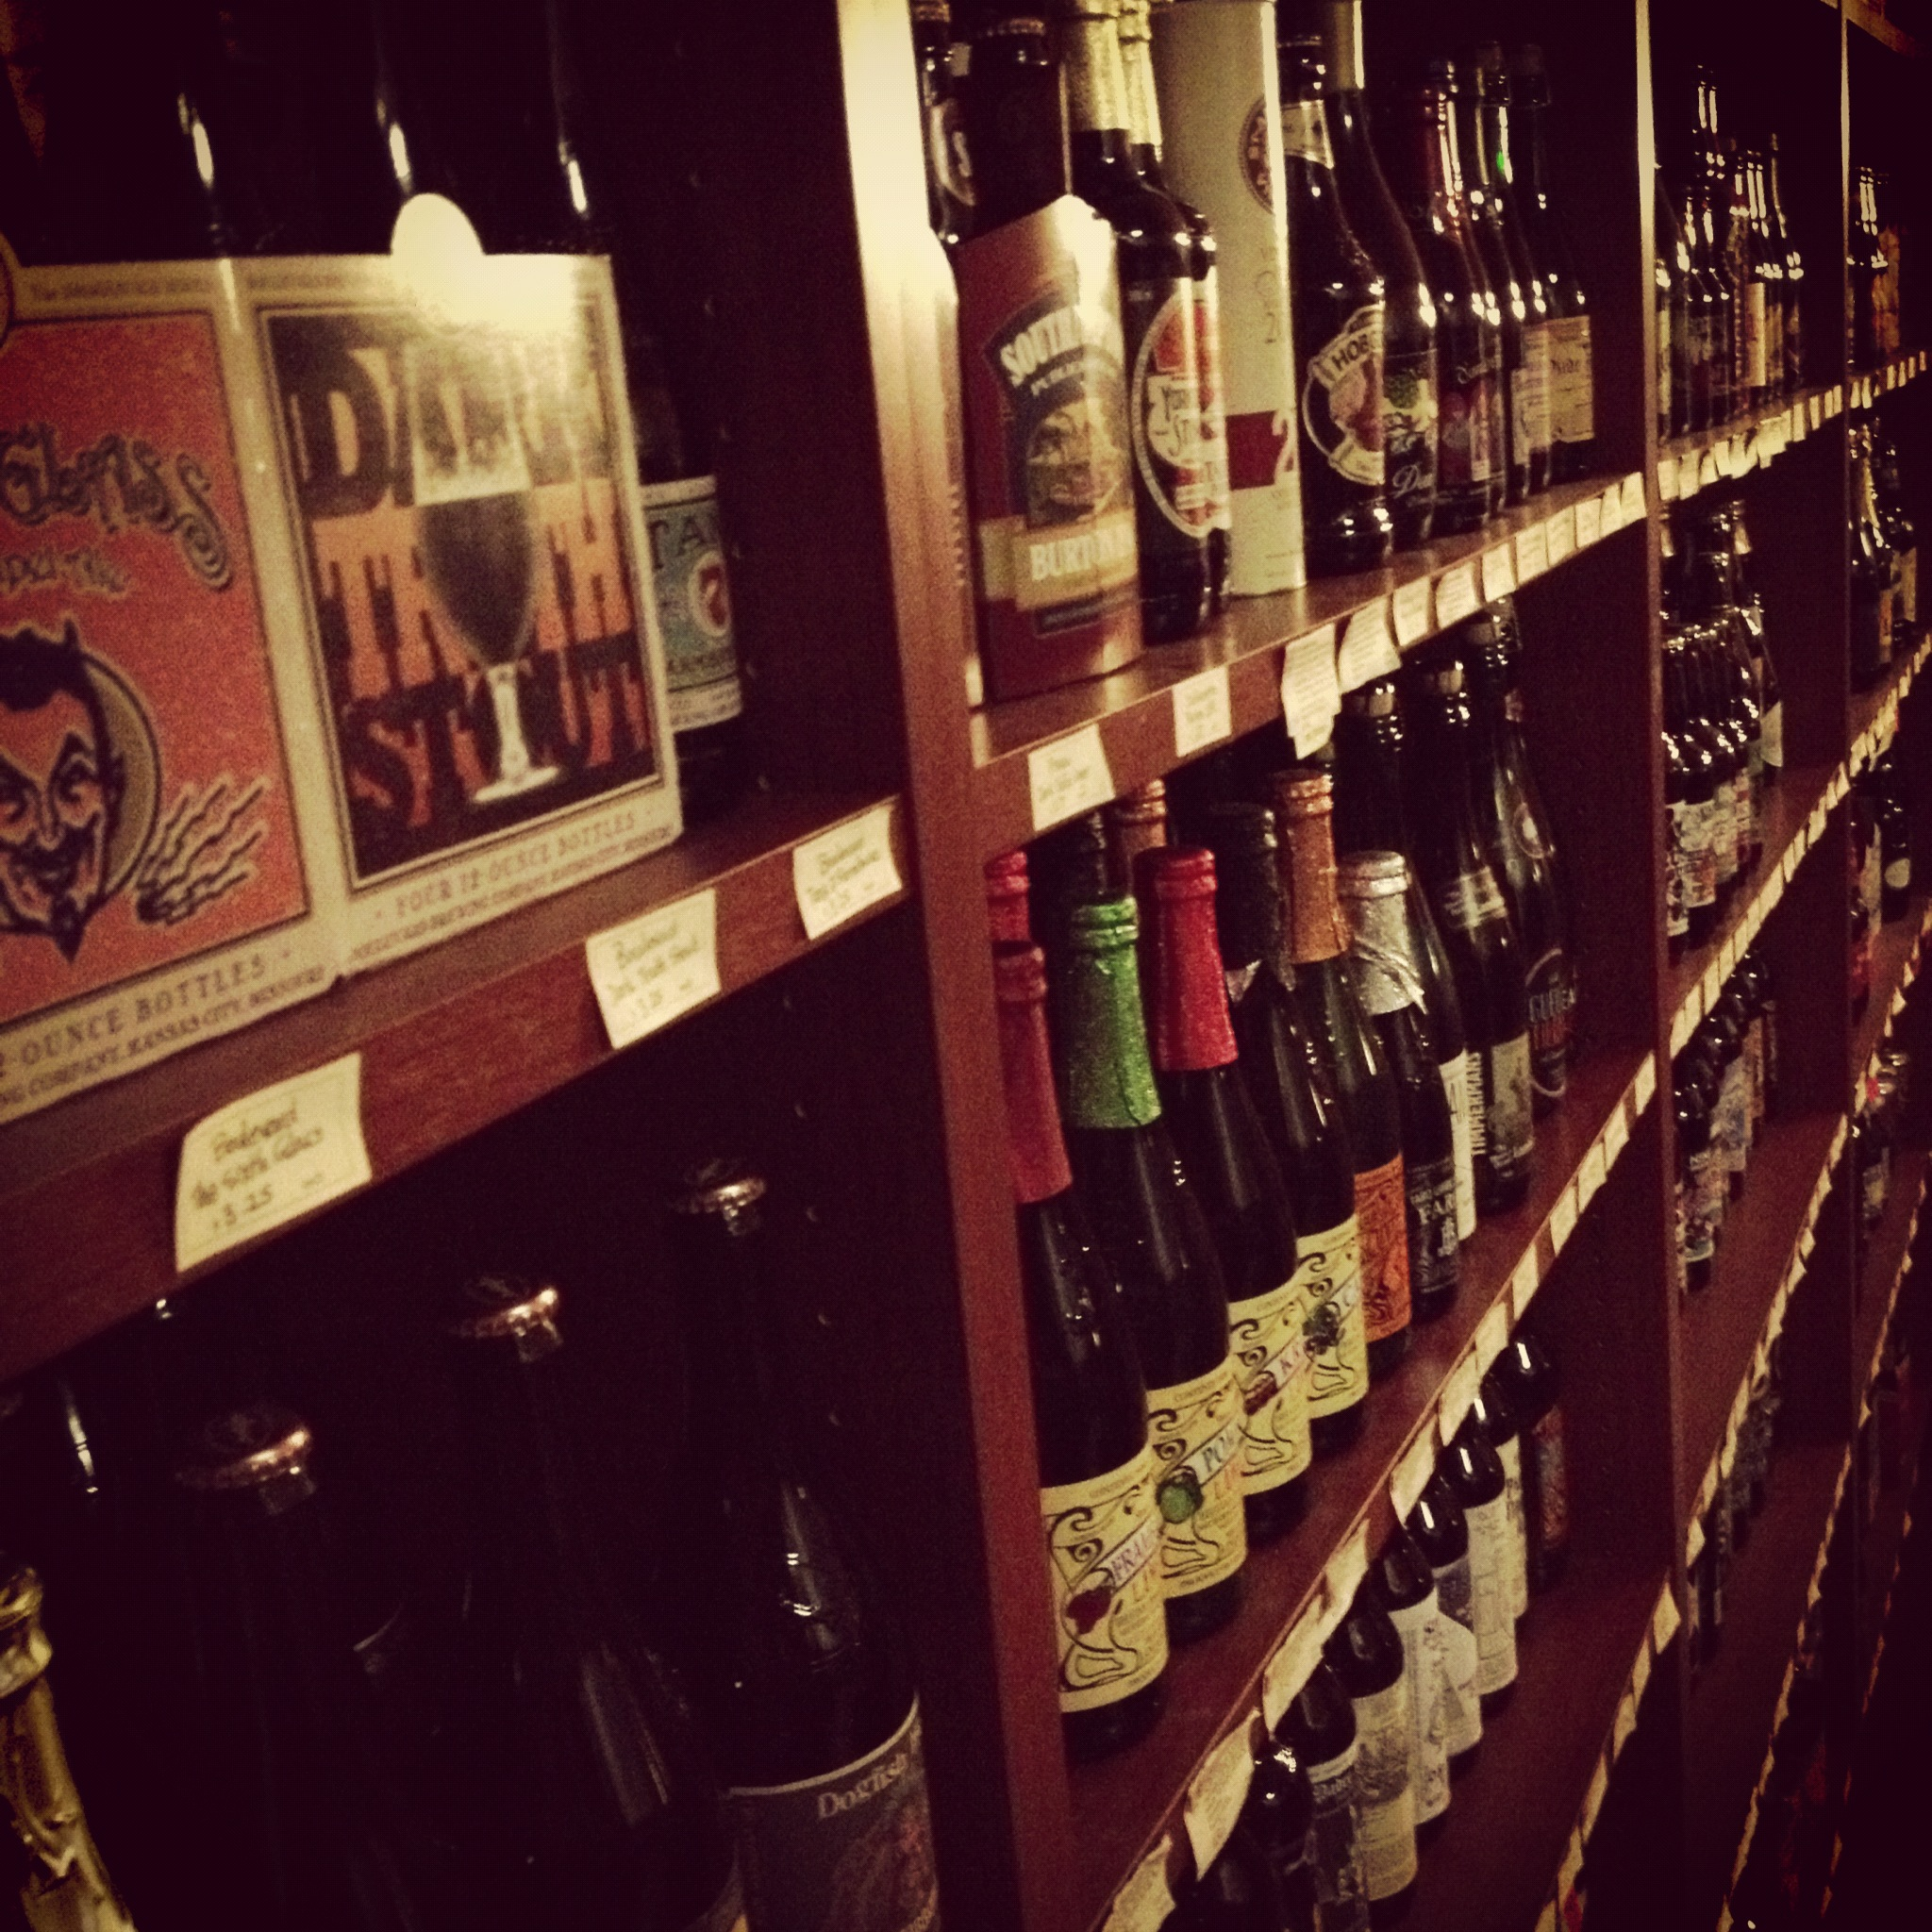 Why shop at independent beer & wine stores?